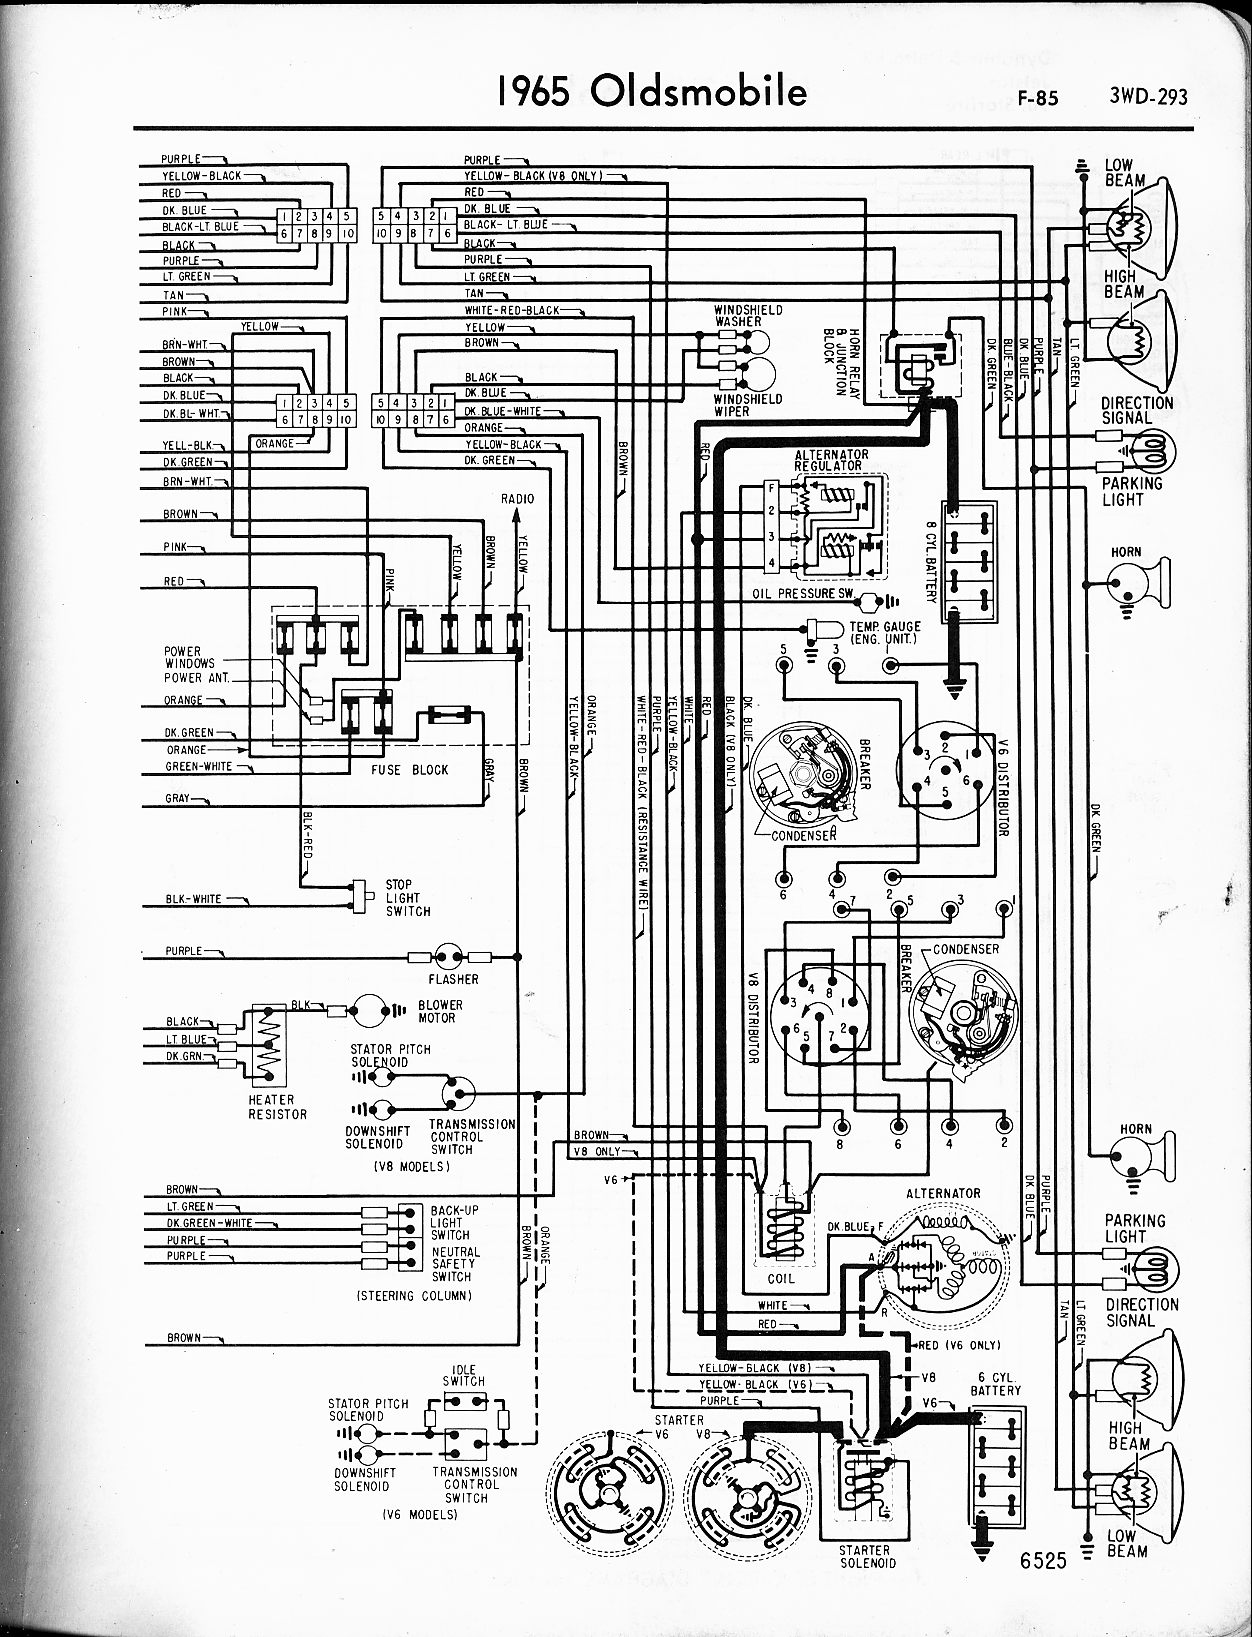 wiring diagram/schematic | 1965 oldsmobile 442 forum 1967 oldsmobile 98 wiring diagram